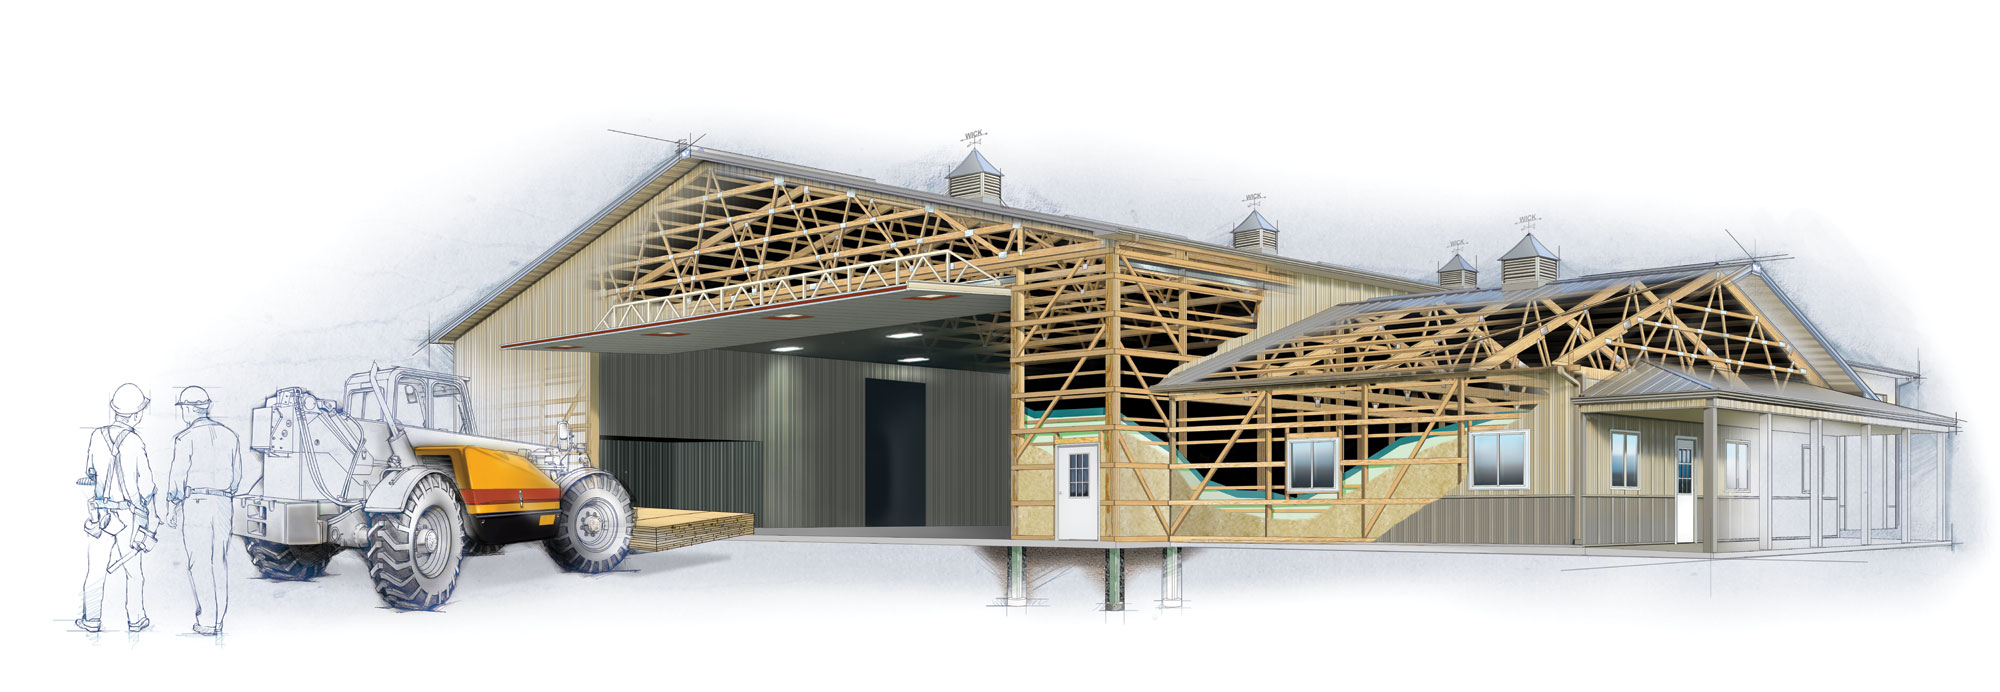 hight resolution of the new pole building